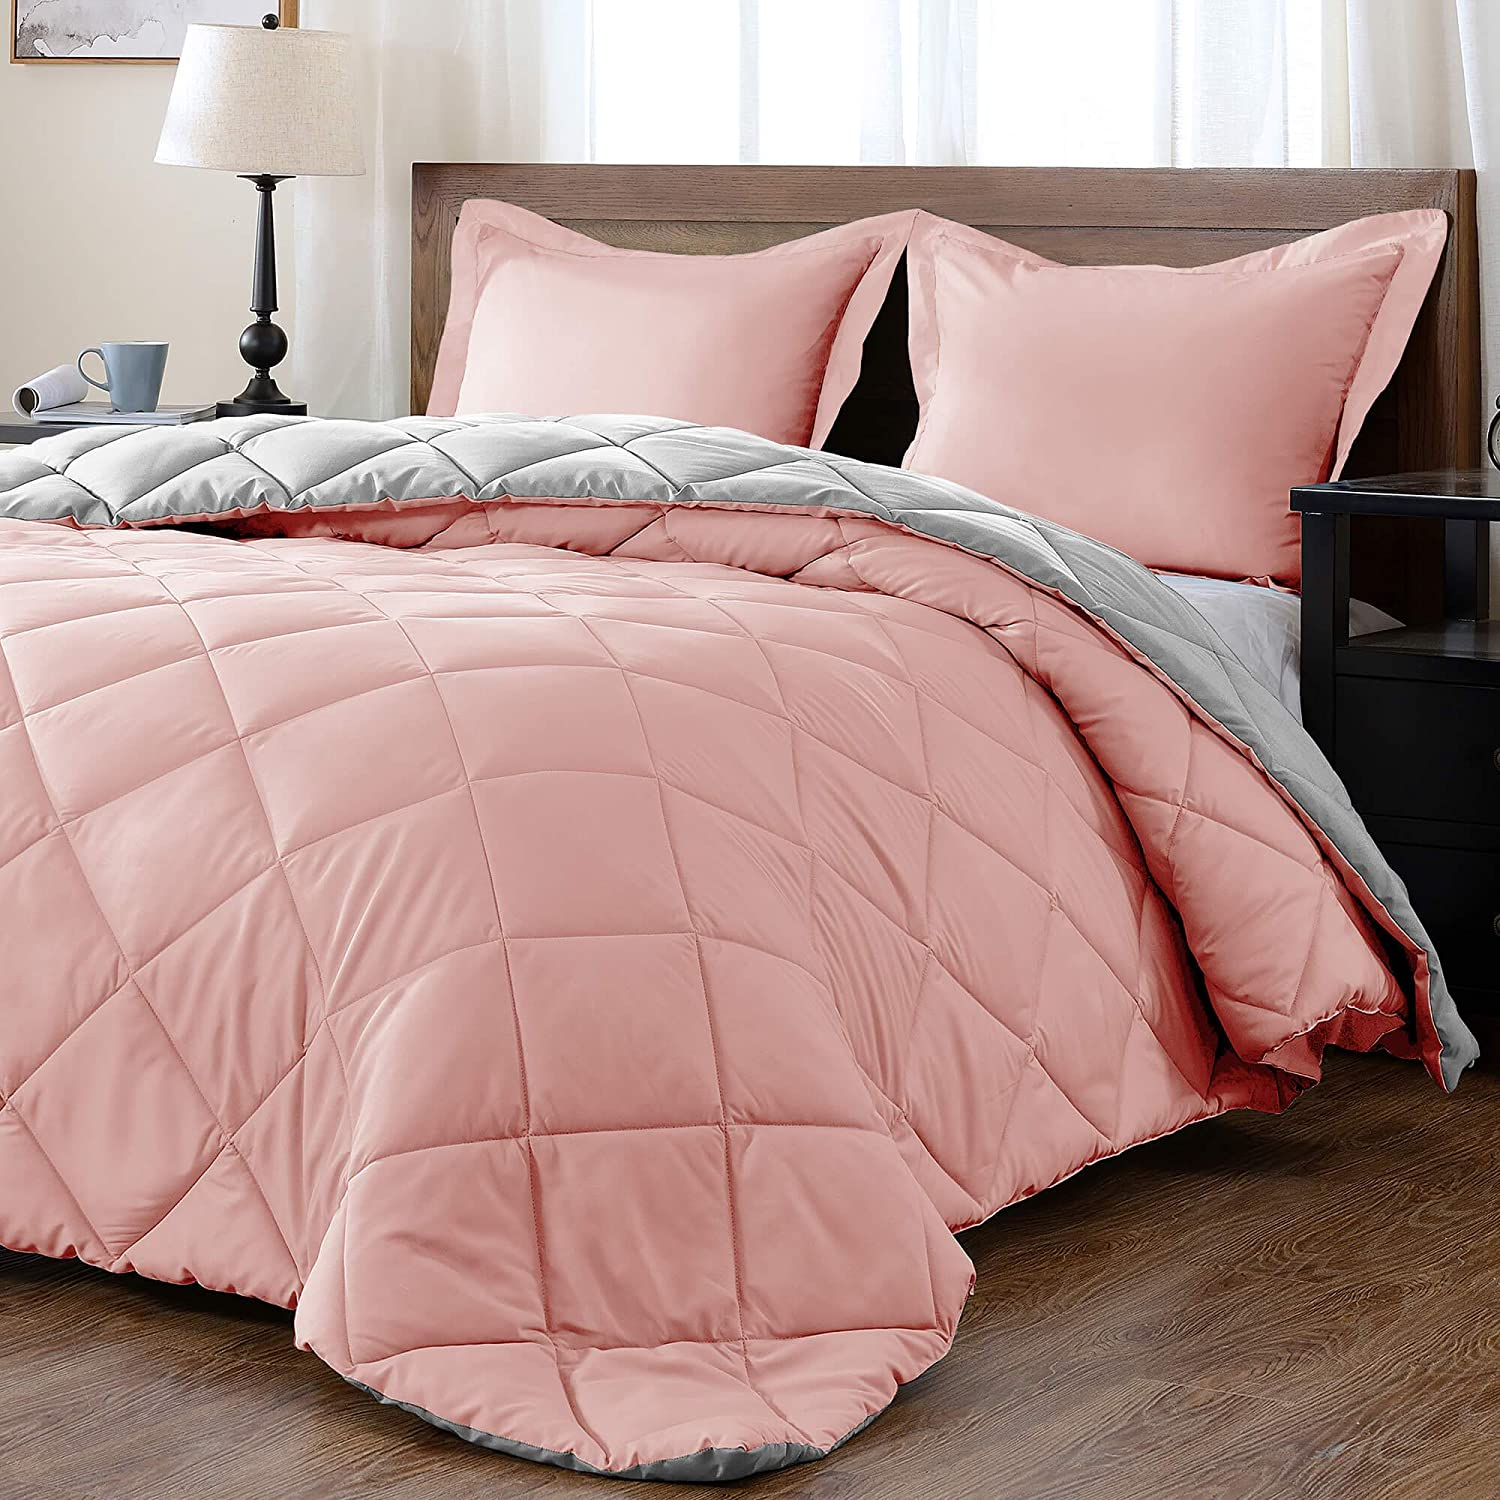 Solid Comforter Set (Queen) with 2 Pillow Shams - 3-Piece Set - Pink and Grey - Down Alternative Reversible Comforter